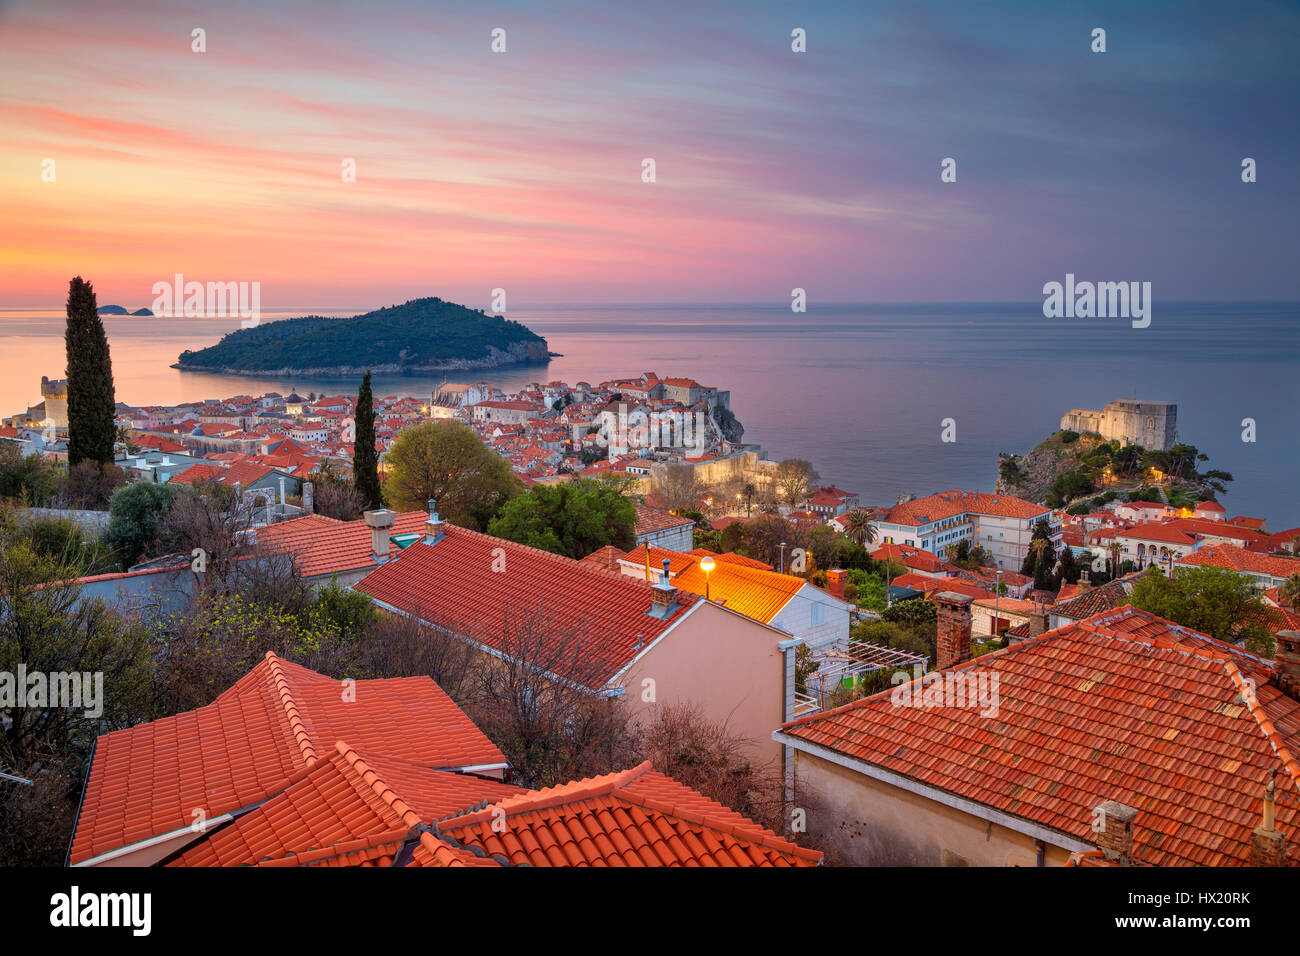 Dubrovnik, Croatia. Beautiful romantic old town of Dubrovnik during sunrise. - Stock Image